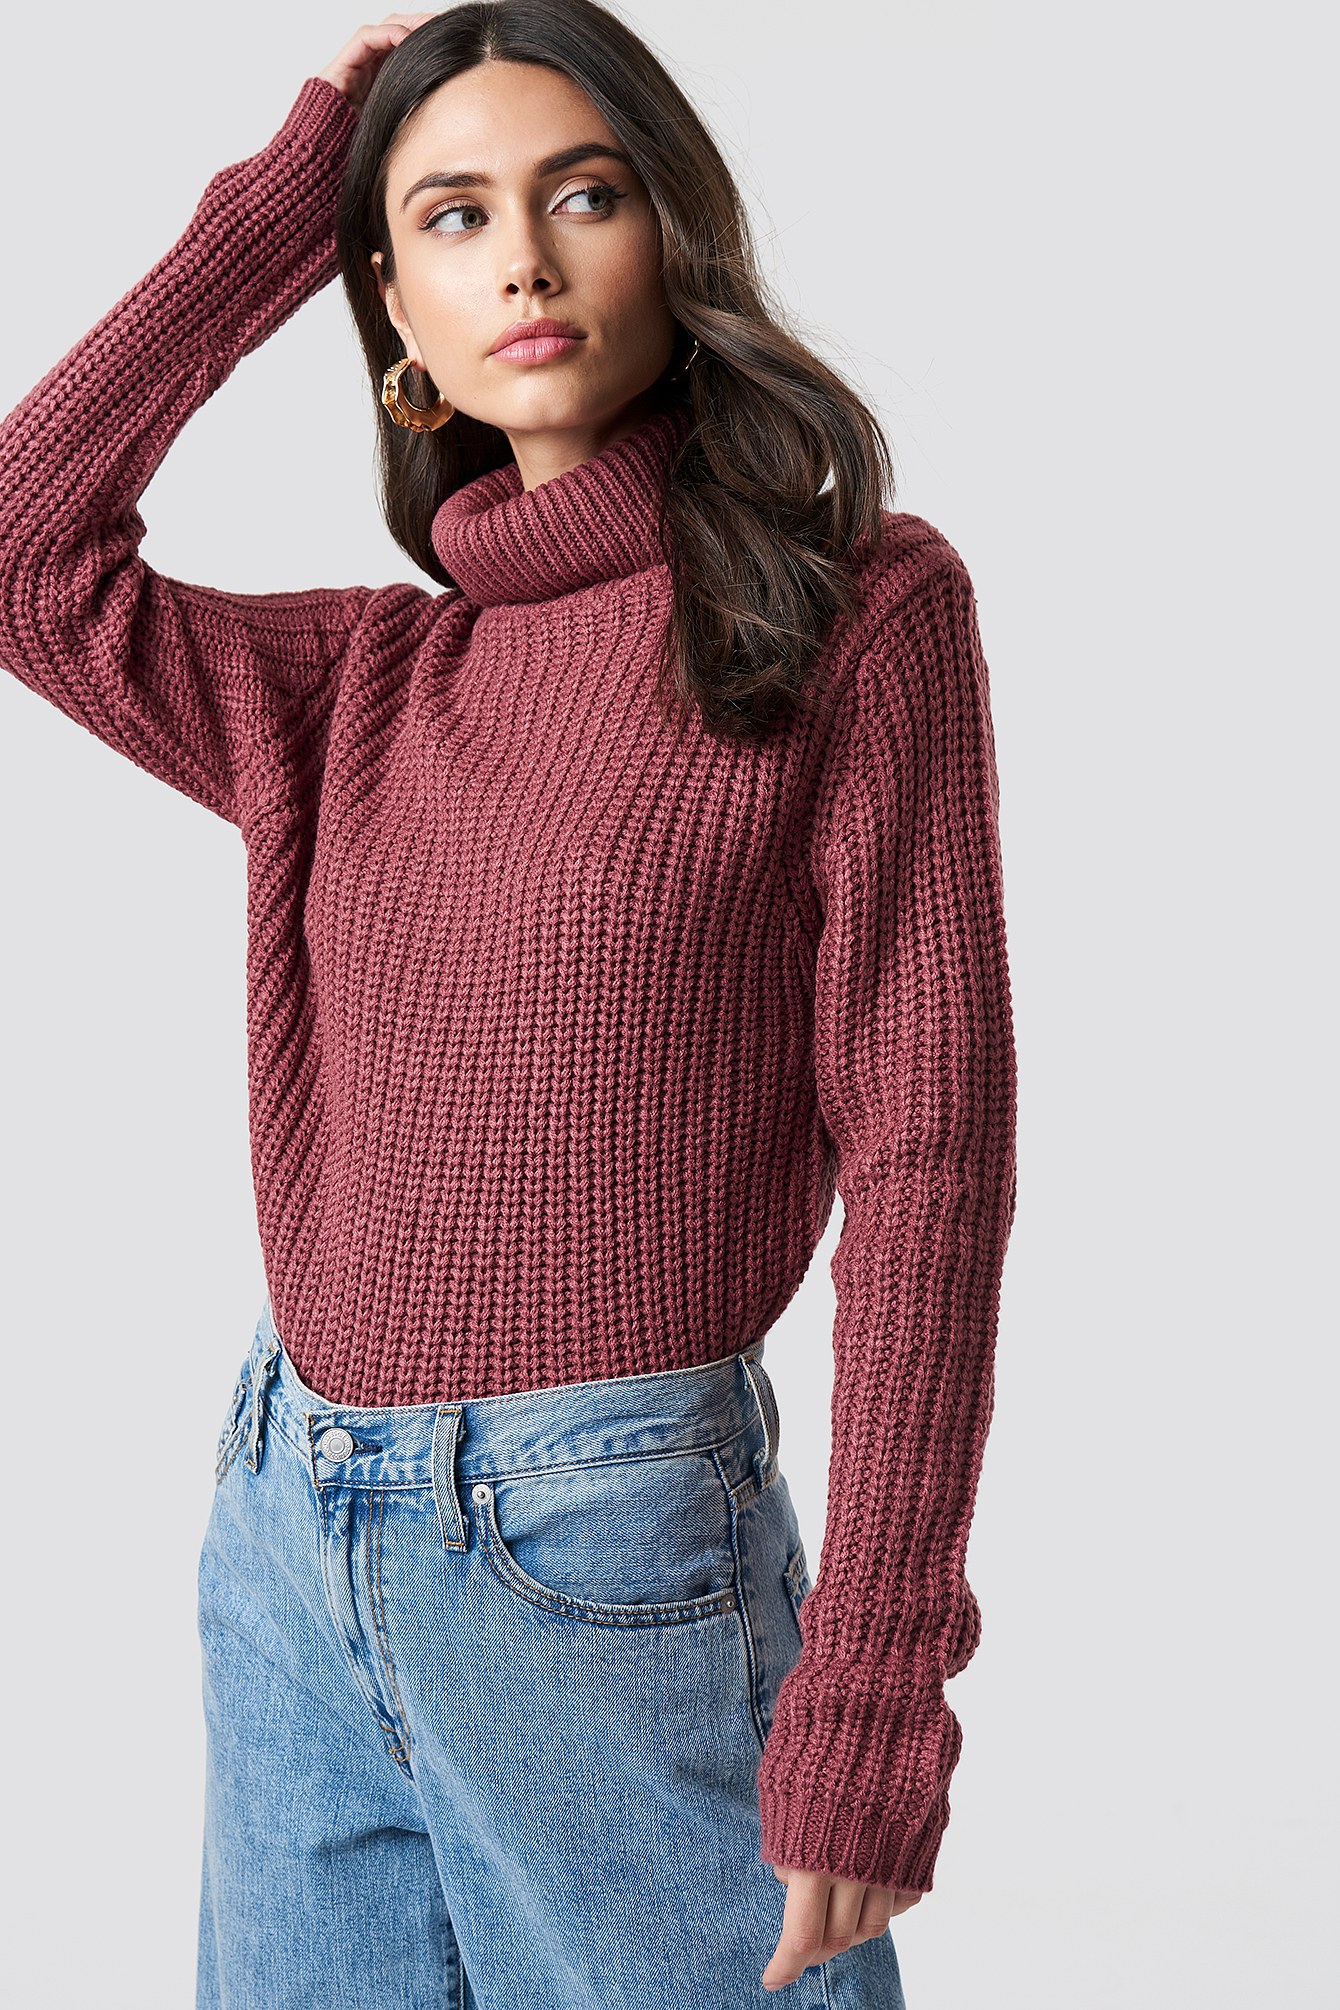 rut&circle -  Tinelle rollneck knit - Pink